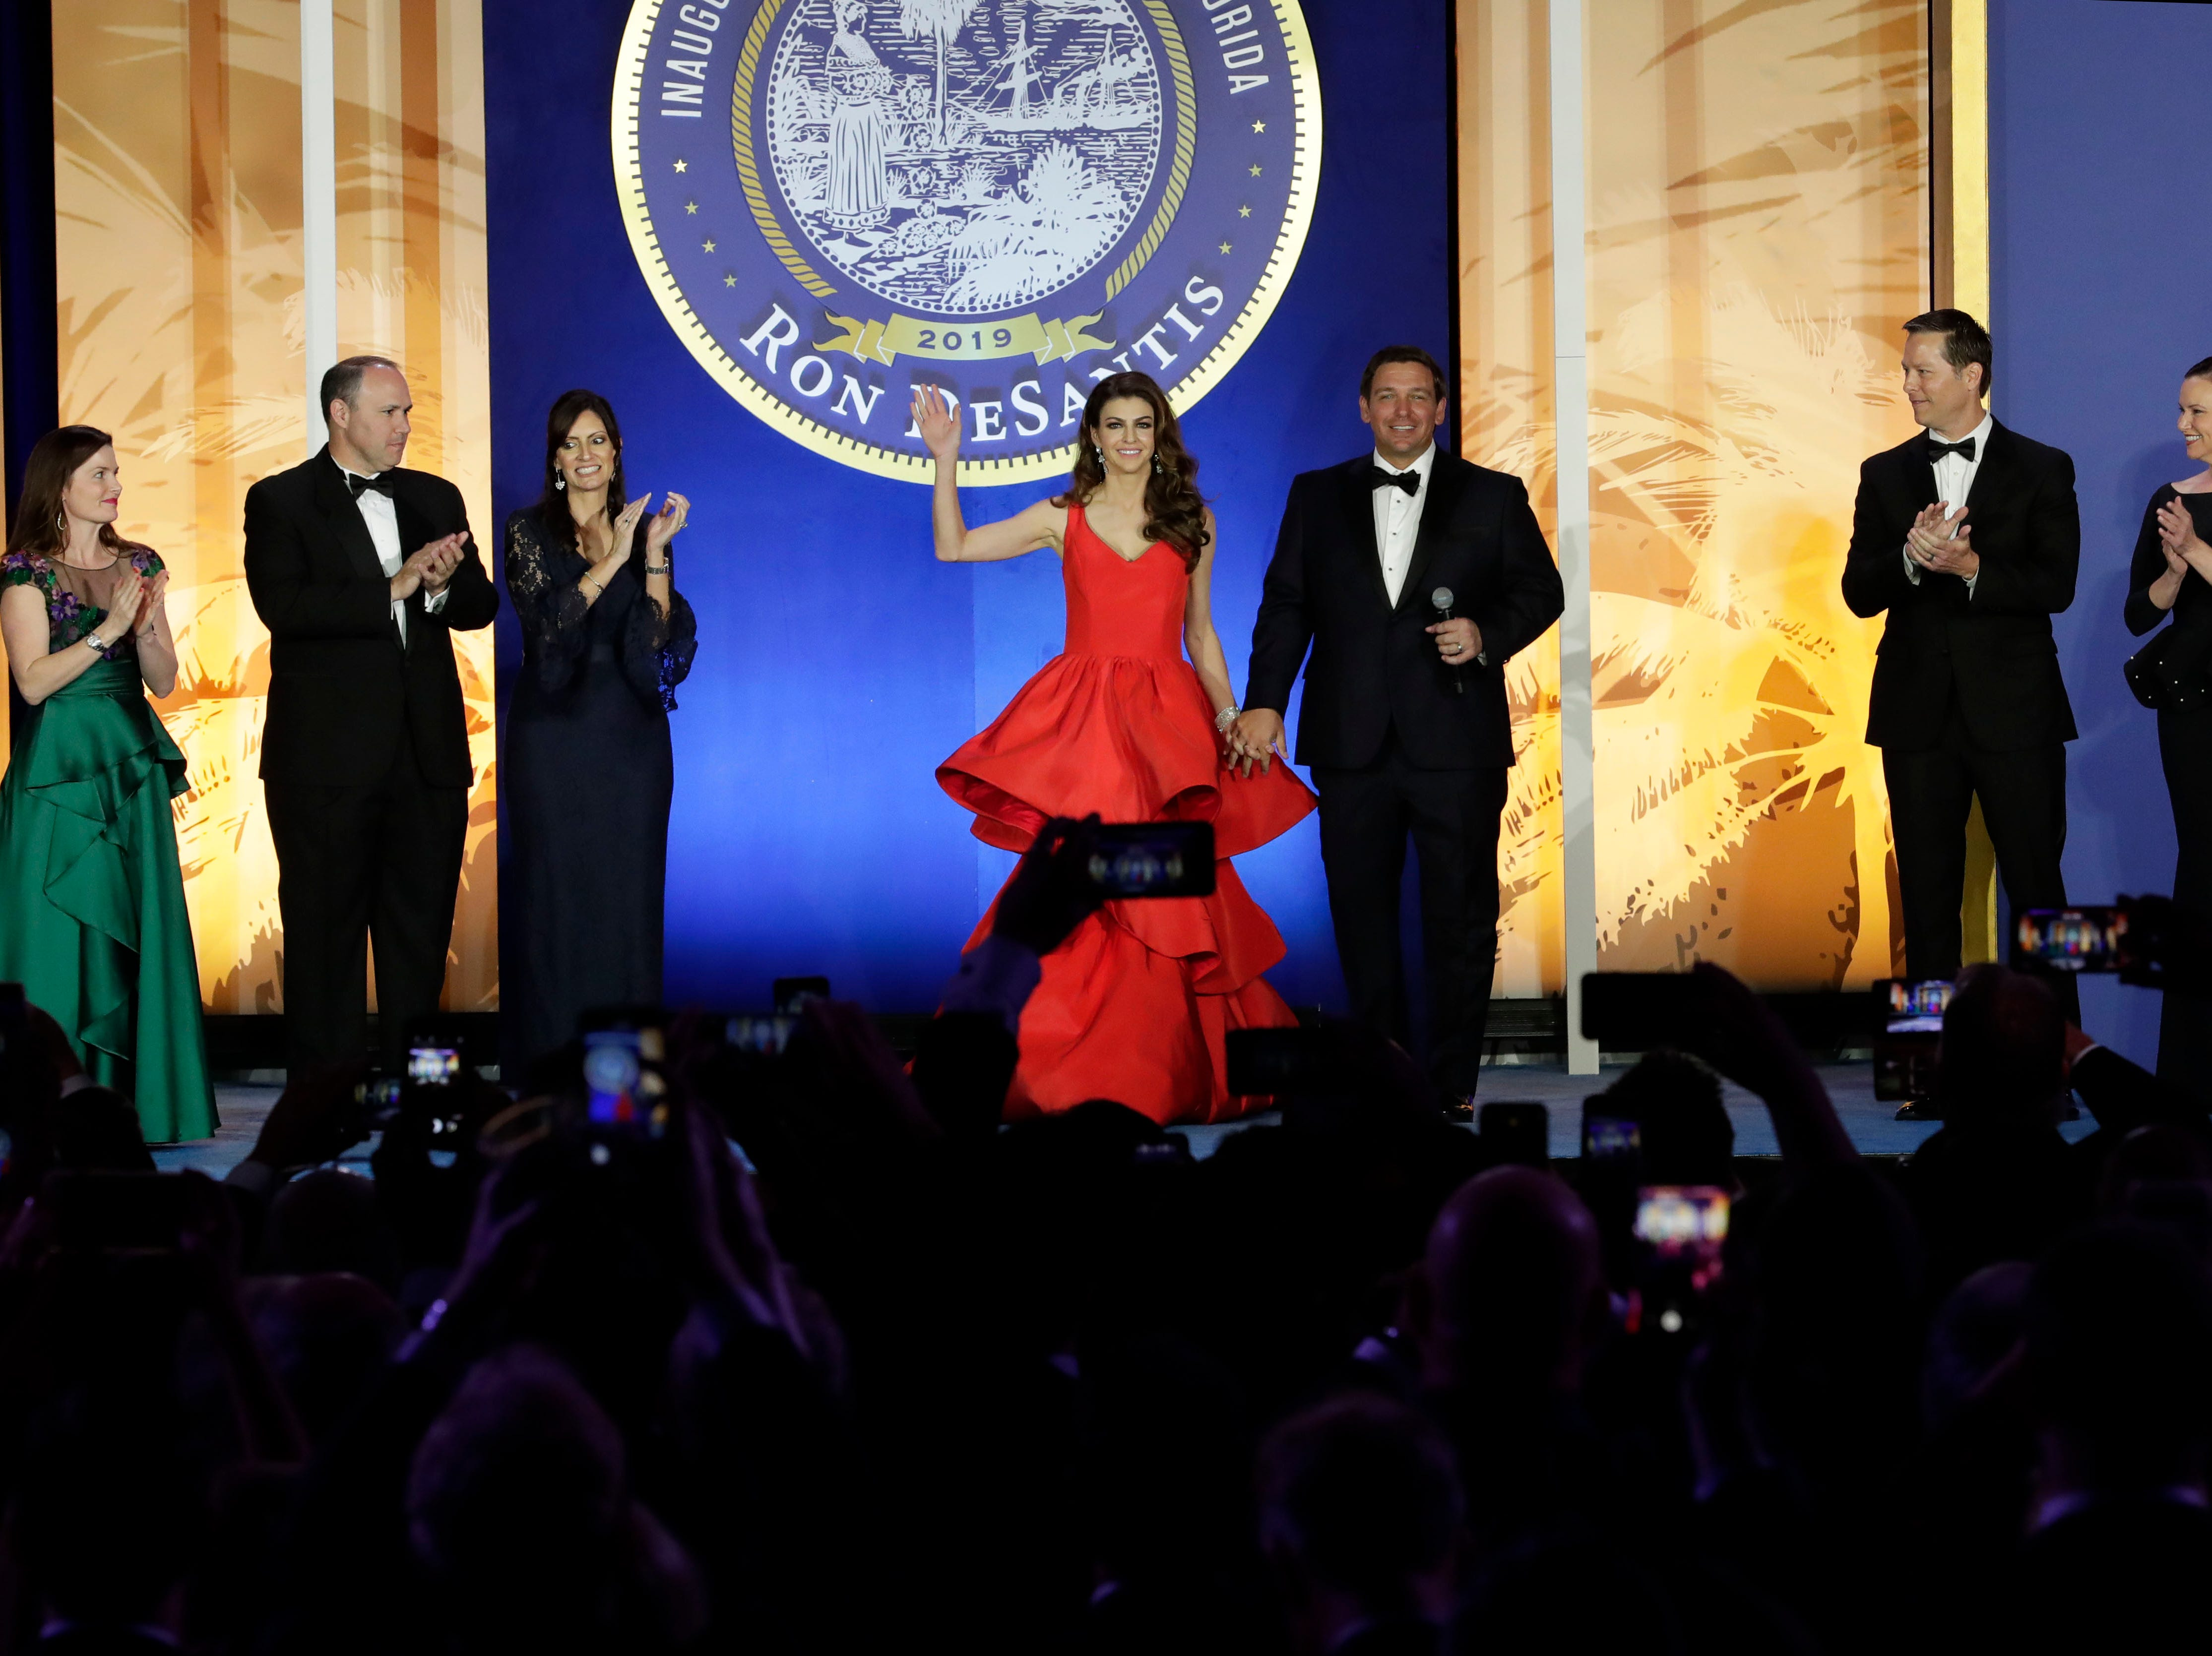 Hundreds of guests from all over Florida attend Florida's 46th Governor's Inaugural Ball at the Tucker Civic Center, Tuesday, Jan. 8, 2019. First lady Casey DeSantis, and her husband, Gov. Ron DeSantis take center stage as the are greeted by the crowd with applause.